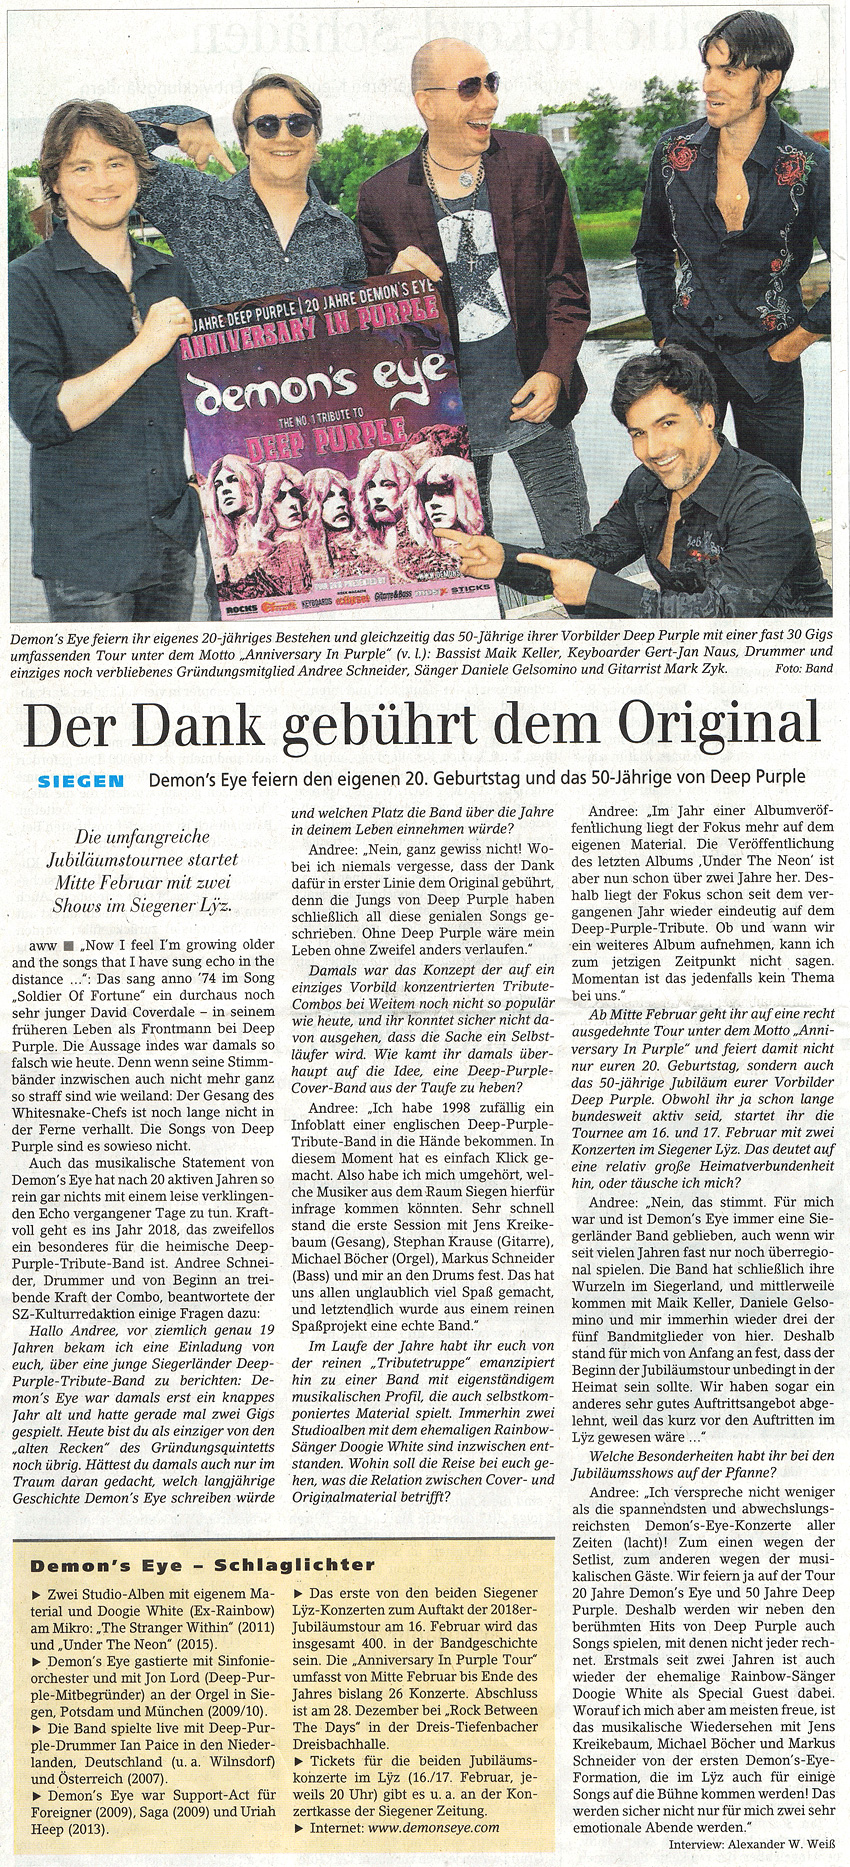 Anniversary in Purple Tour beginnt - Demon's Eye - Siegener Zeitung vom 05.01.2018